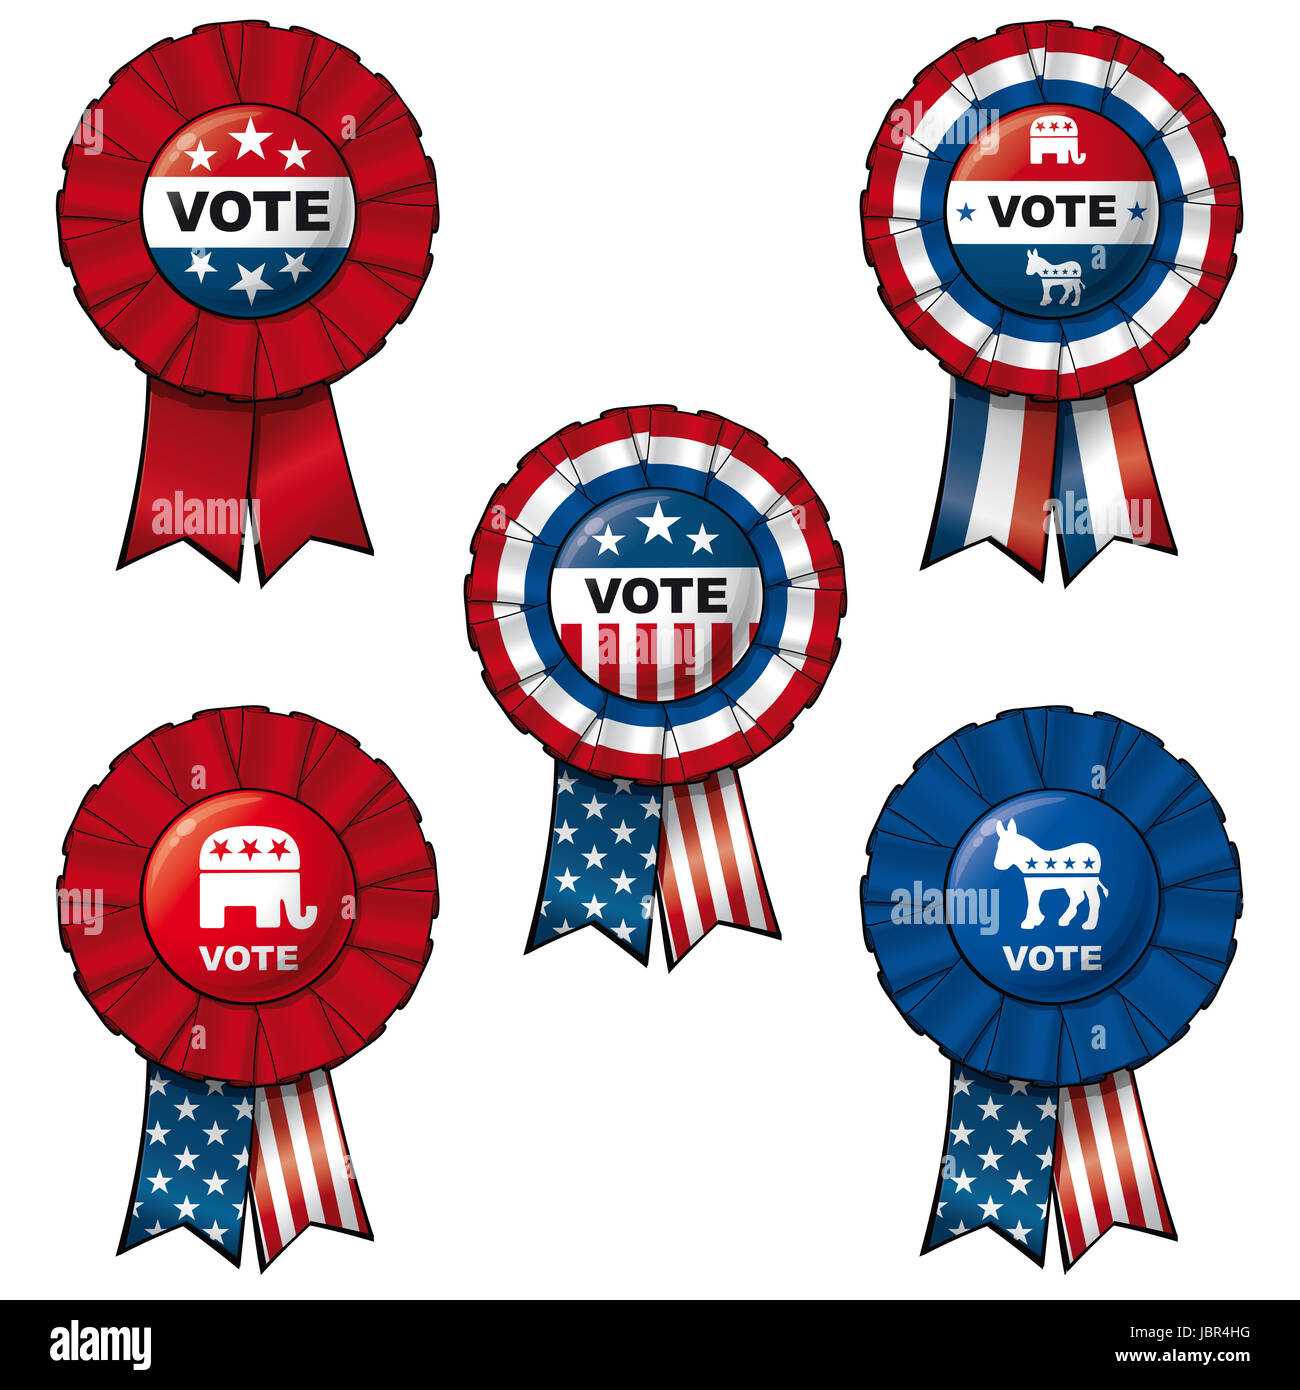 Set of 5 interchangeable Ribbons and Buttons on 'VOTE' subject.  Each of the 5 items on separate layers. - Stock Image